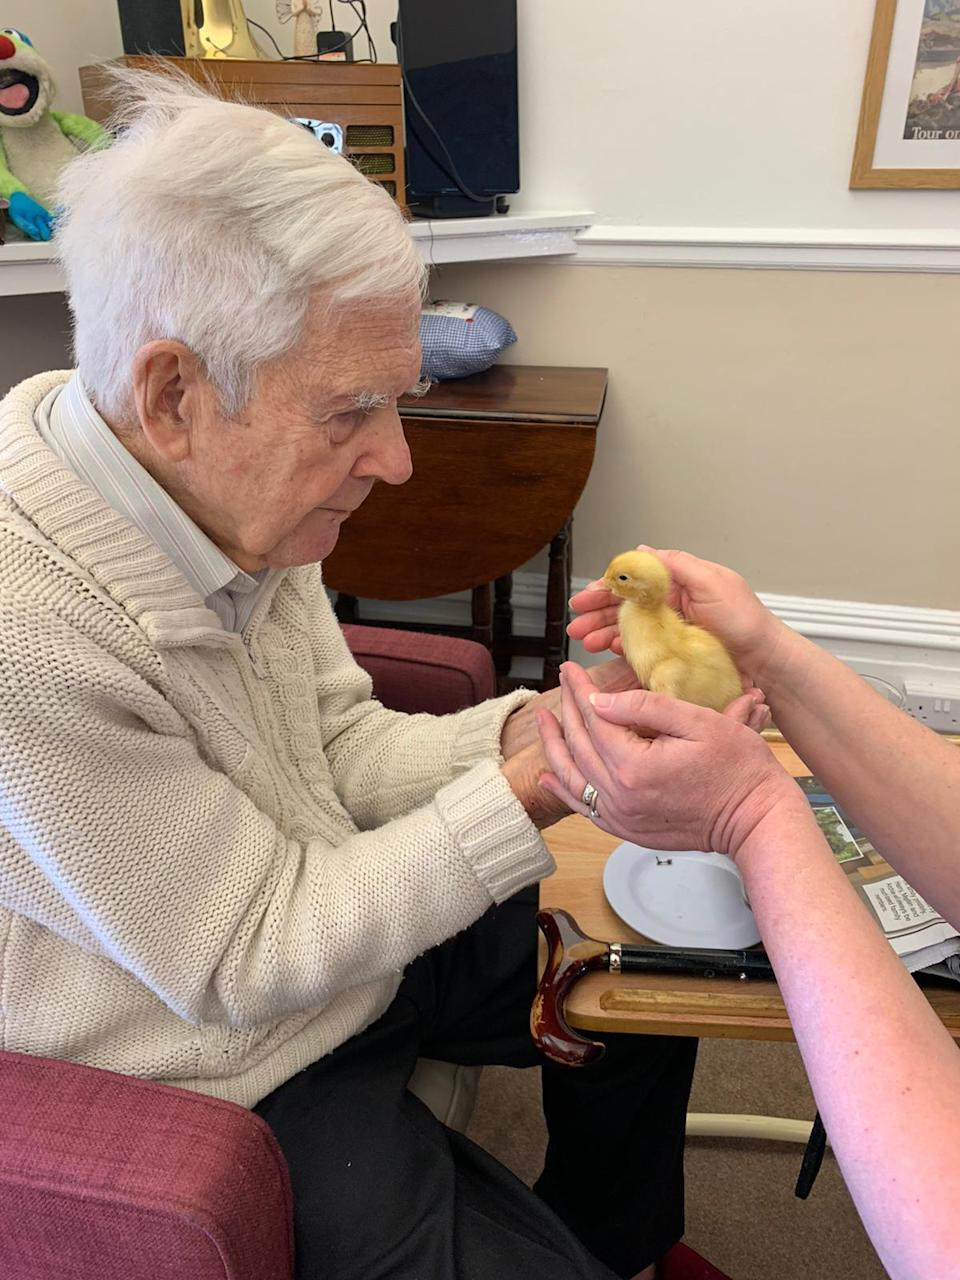 Michael Vaughan (95) with a chick